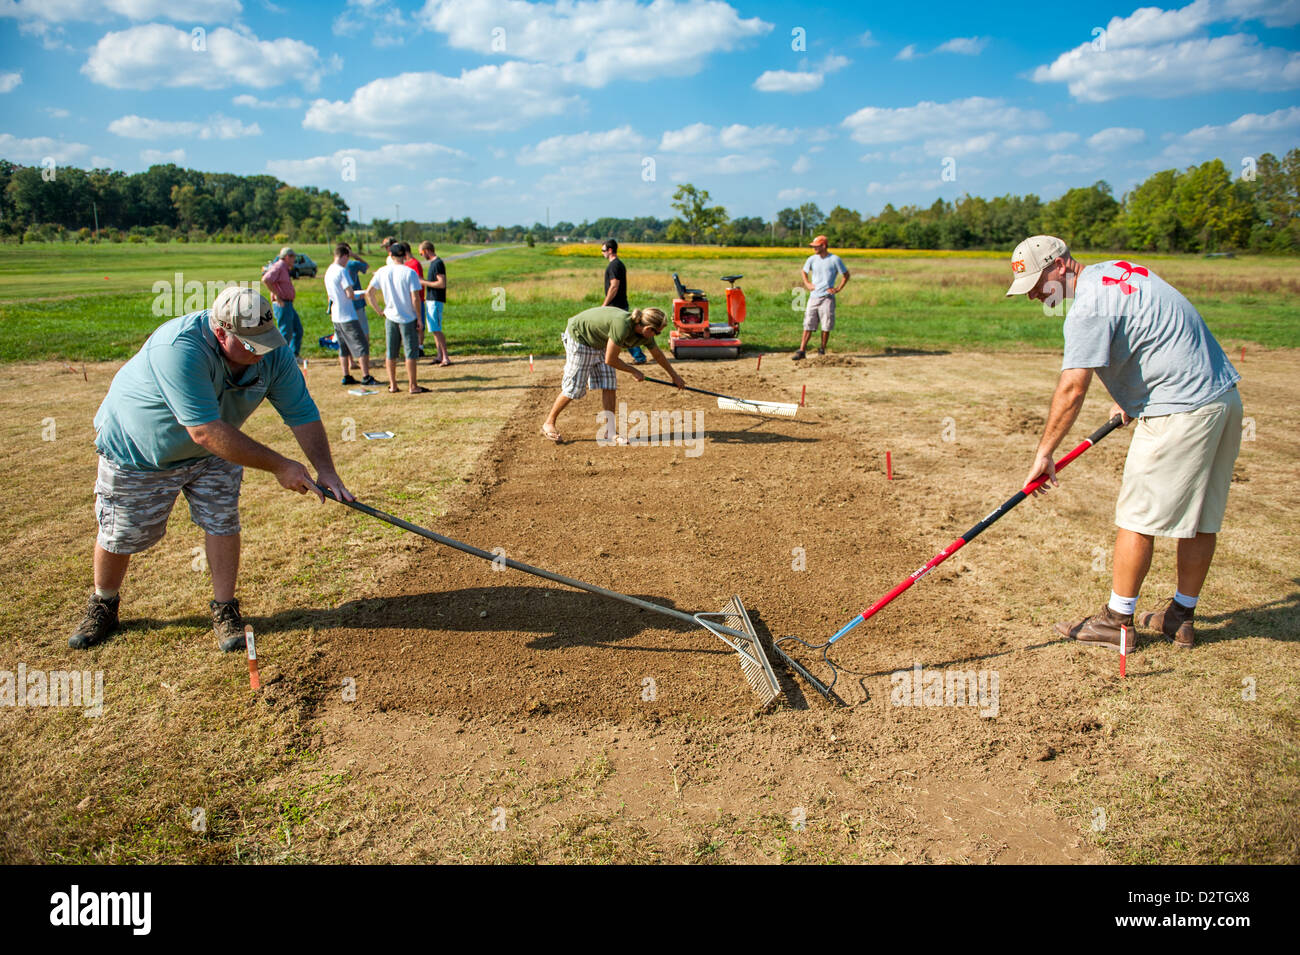 Group of people raking soil to plant a garden - Stock Image